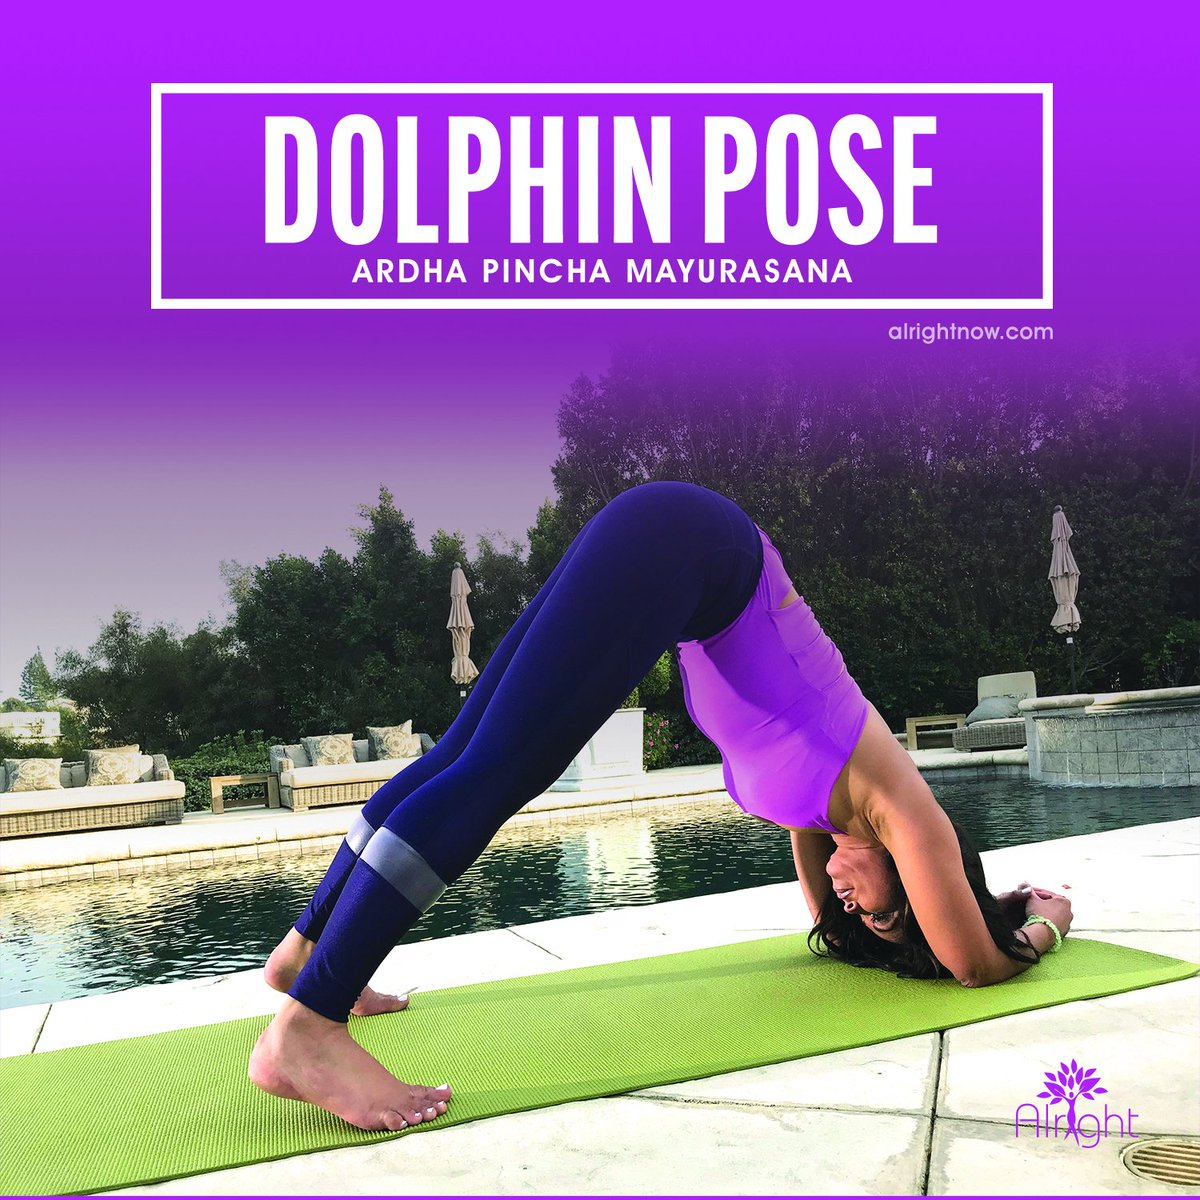 #DolphinPose Can help headaches insomnia fatigue, calm brain, strengthen arms/legs, aid digestion & menopause/menstrual probs, stretch shoulders hamstrings arches calves, fight osteoporosis. Give it at try! C/O  4 mhttps://t.co/8TYTWrLZgpore info   #ArdhaPincha#yoga#AlrightNow